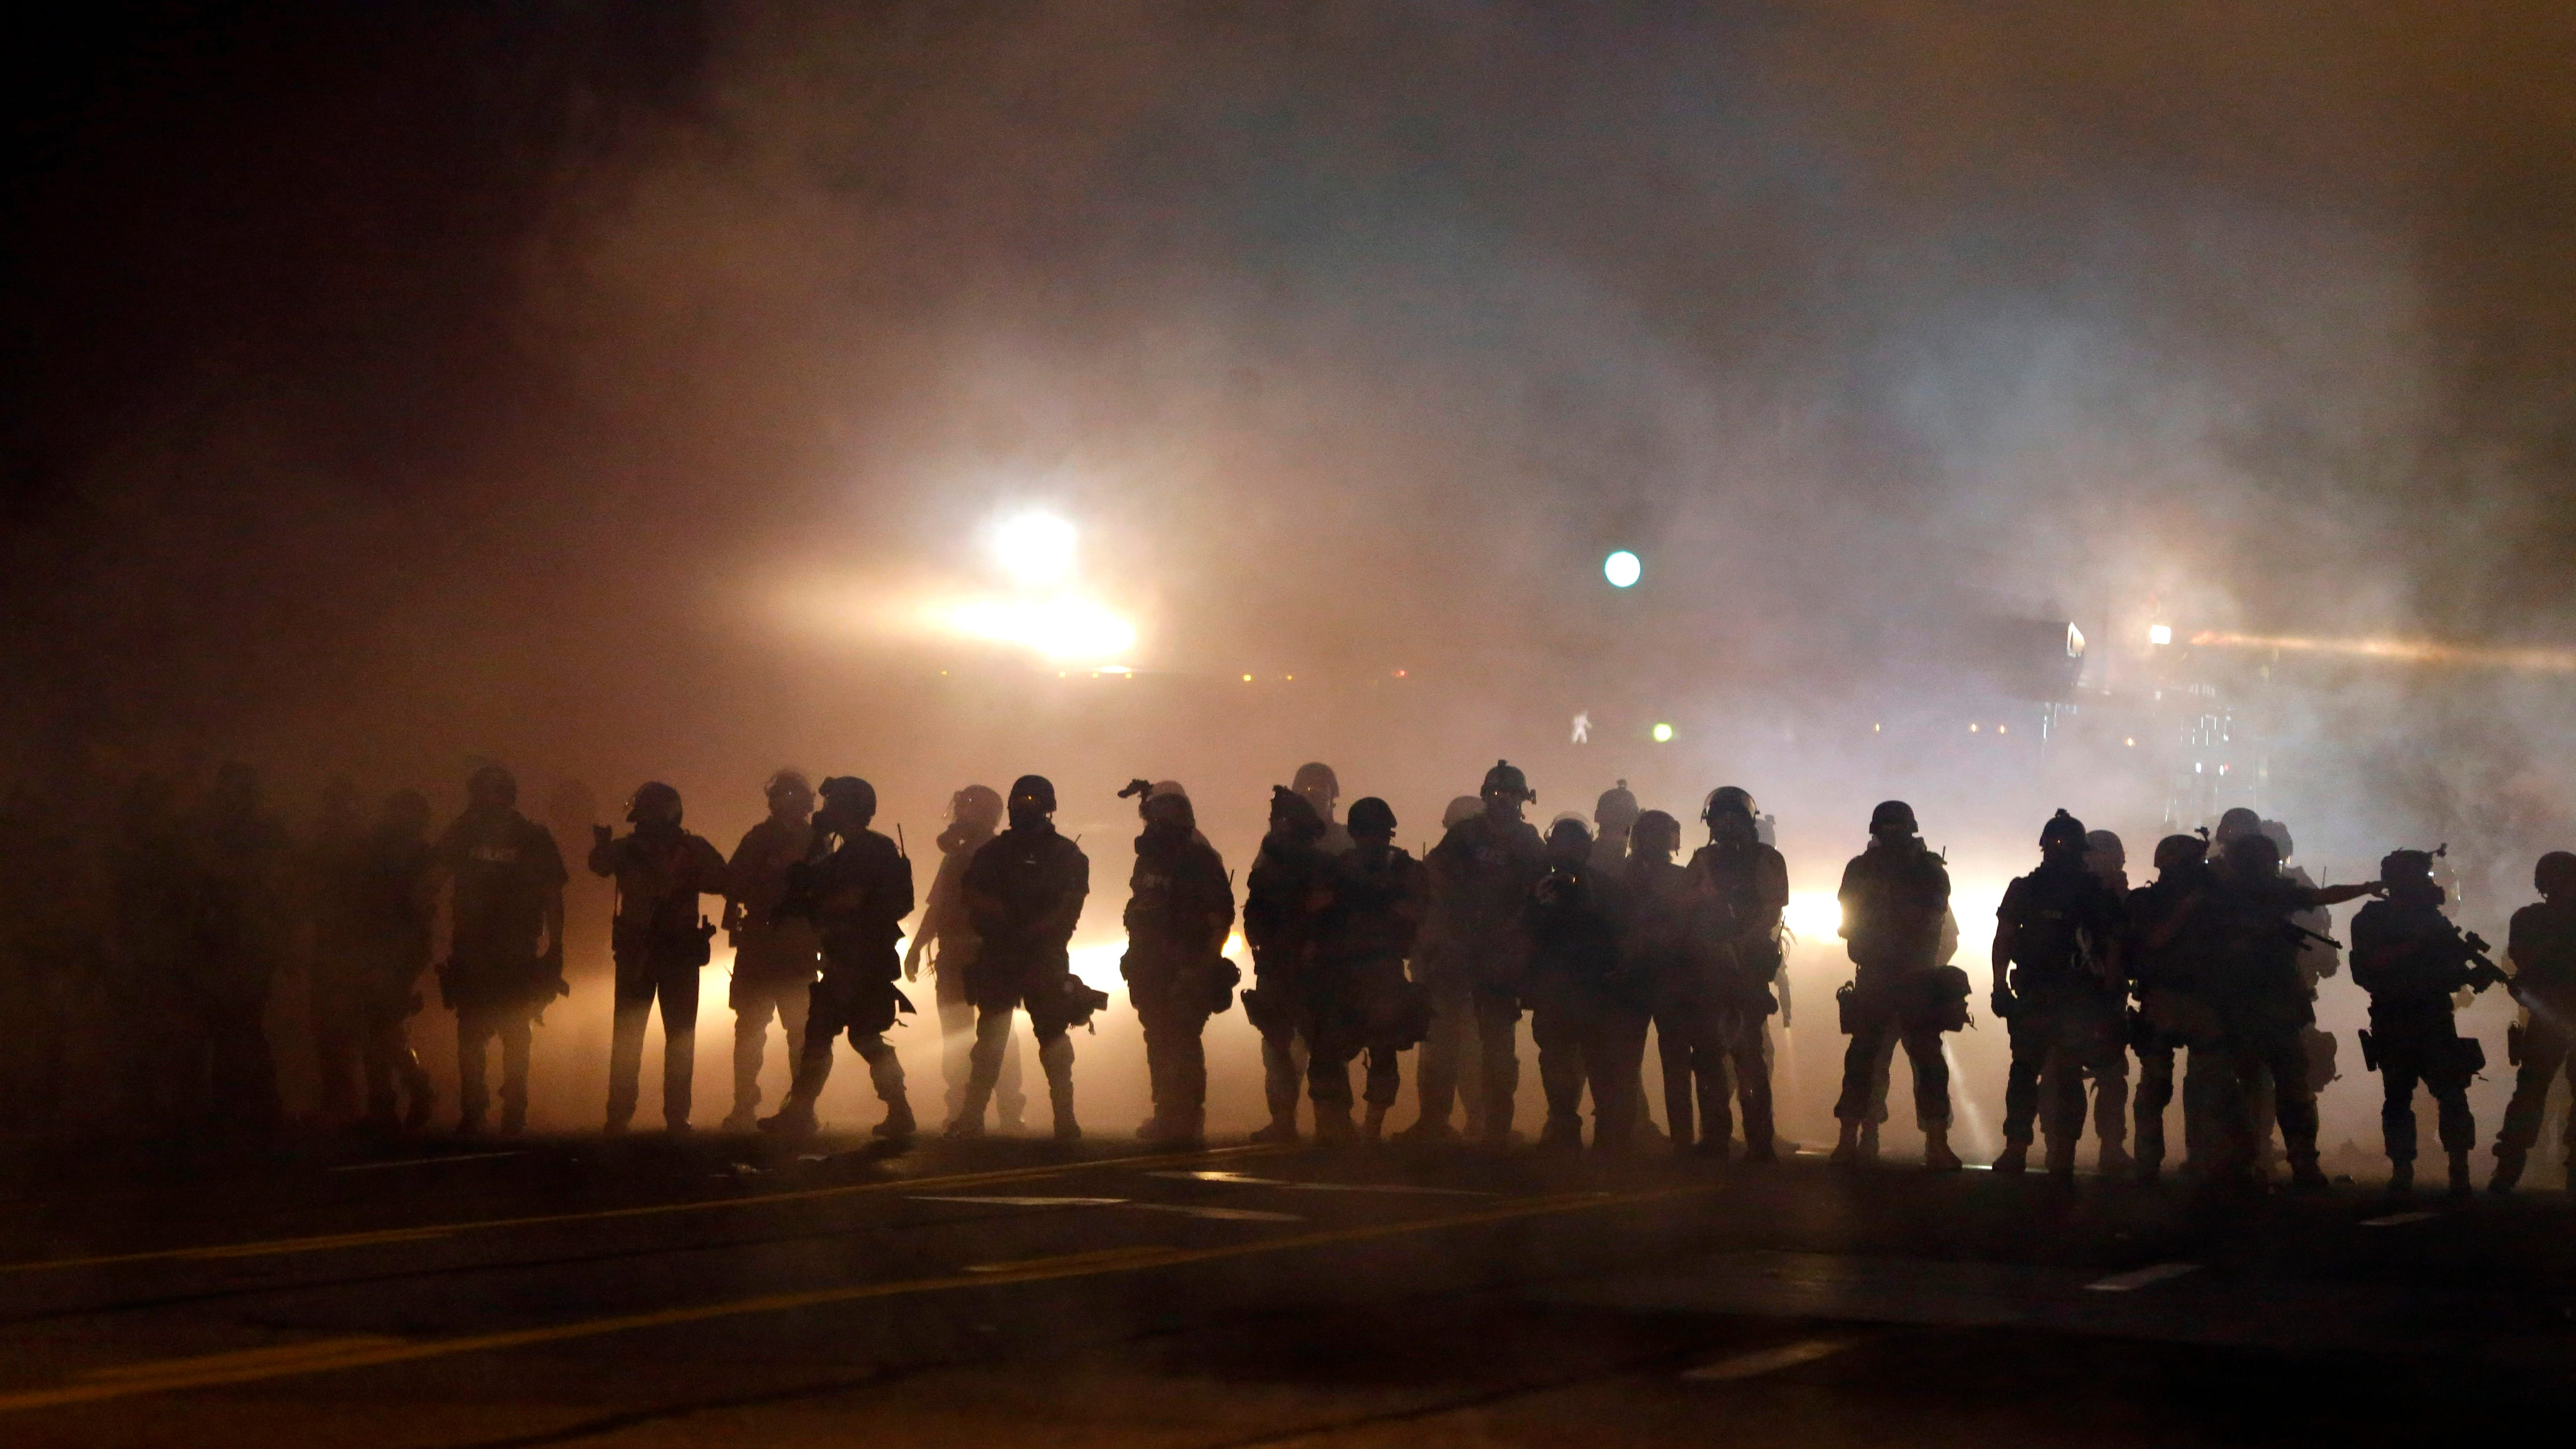 Police walk through a cloud of smoke and tear gas as they clash with protesters during 2014 demonstrations in Ferguson, Missouri. The treatment of protesters in Ferguson prompted many to call for an end to the use of military equipment by police departments.